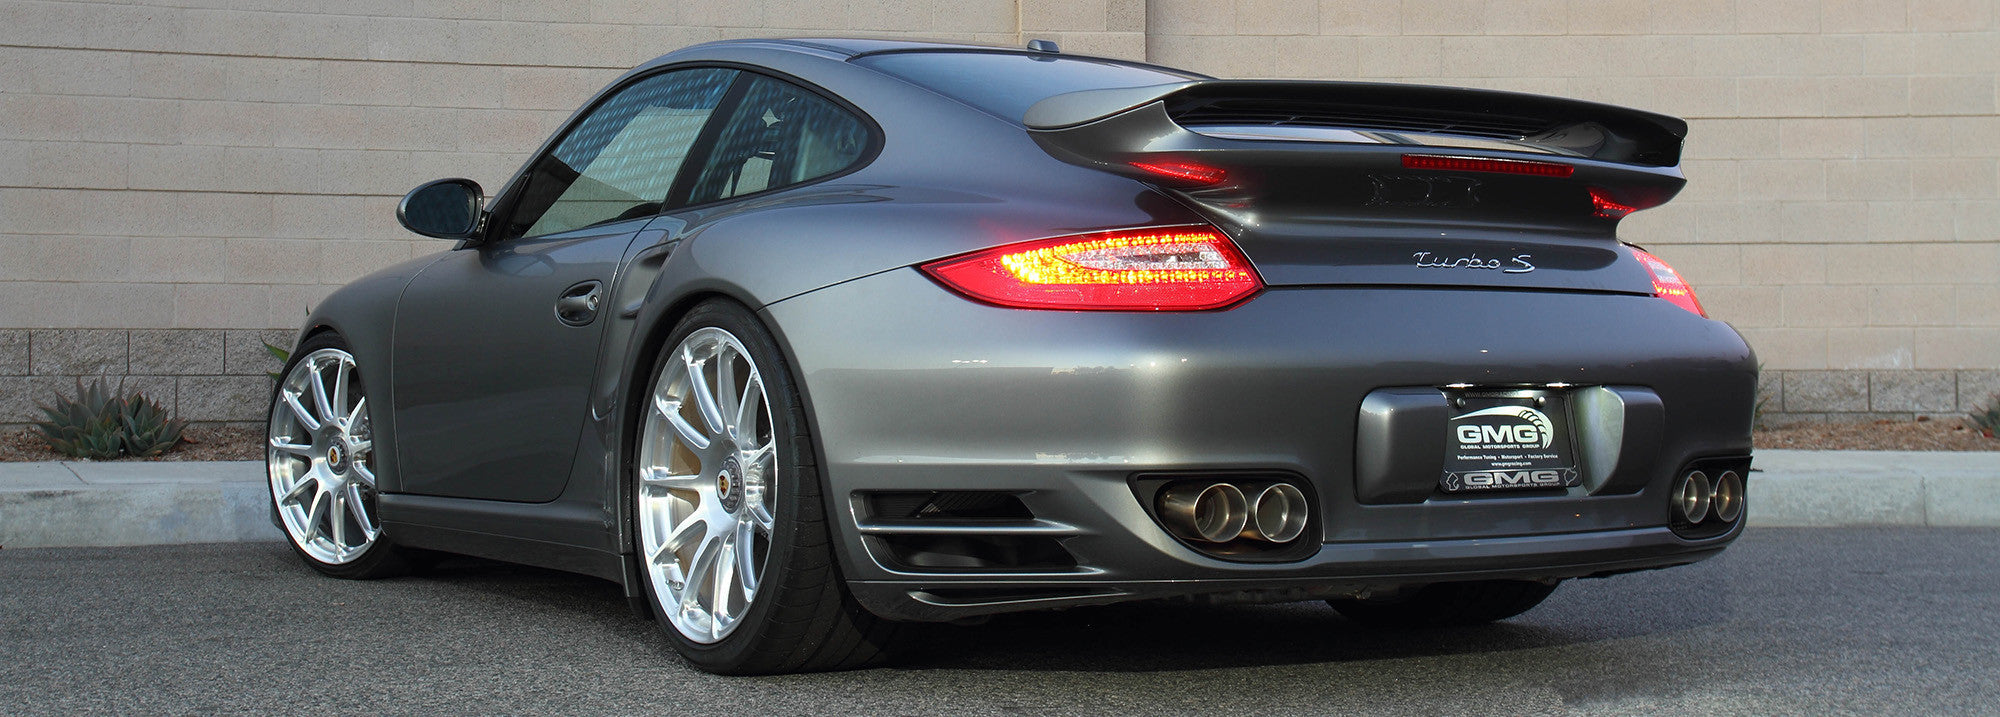 997 2 Turbo Gmg Wc Sport Exhaust System Gmgracing